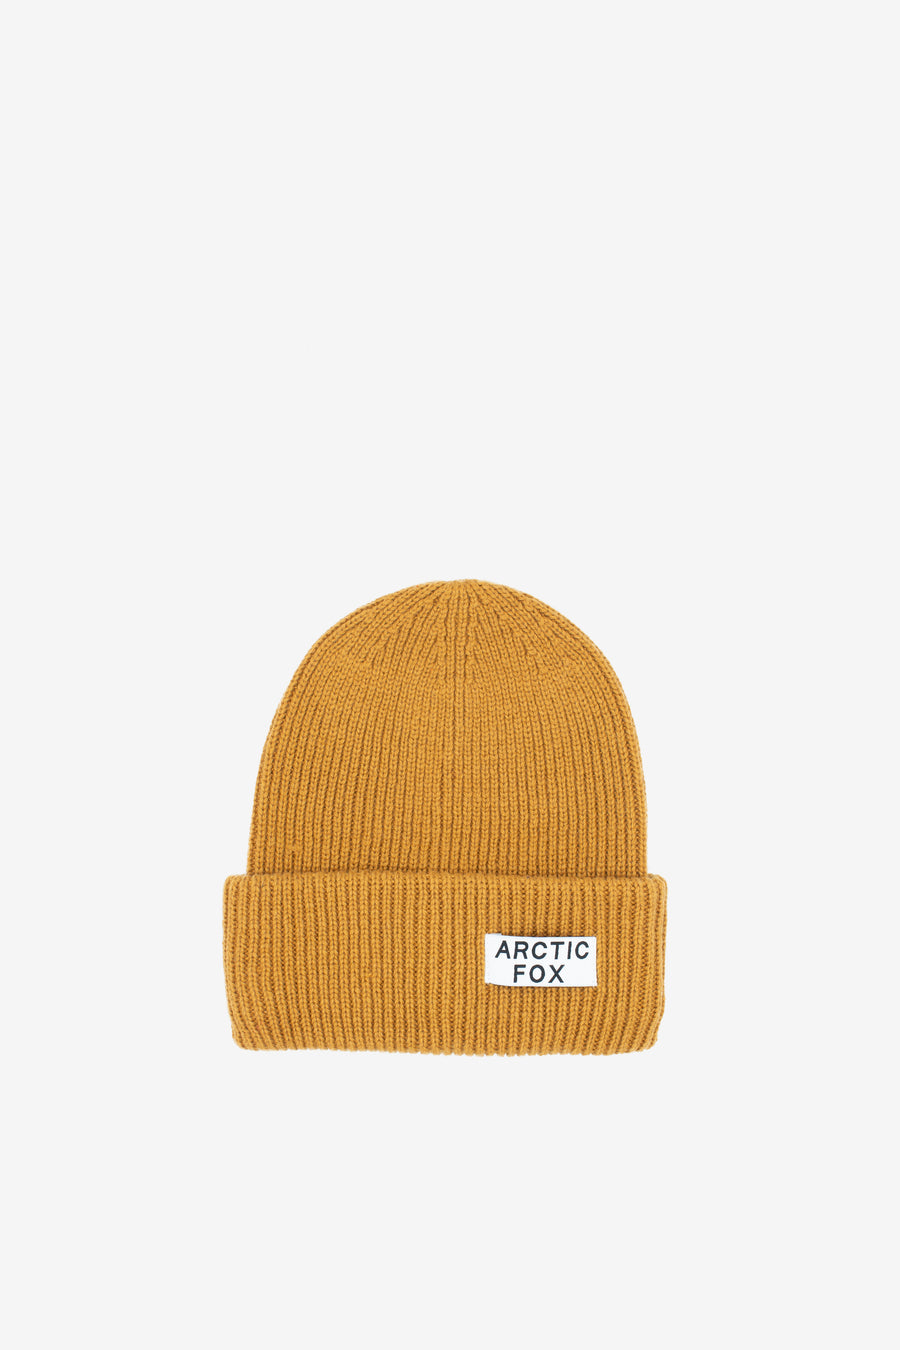 The Recycled Bottle Beanie